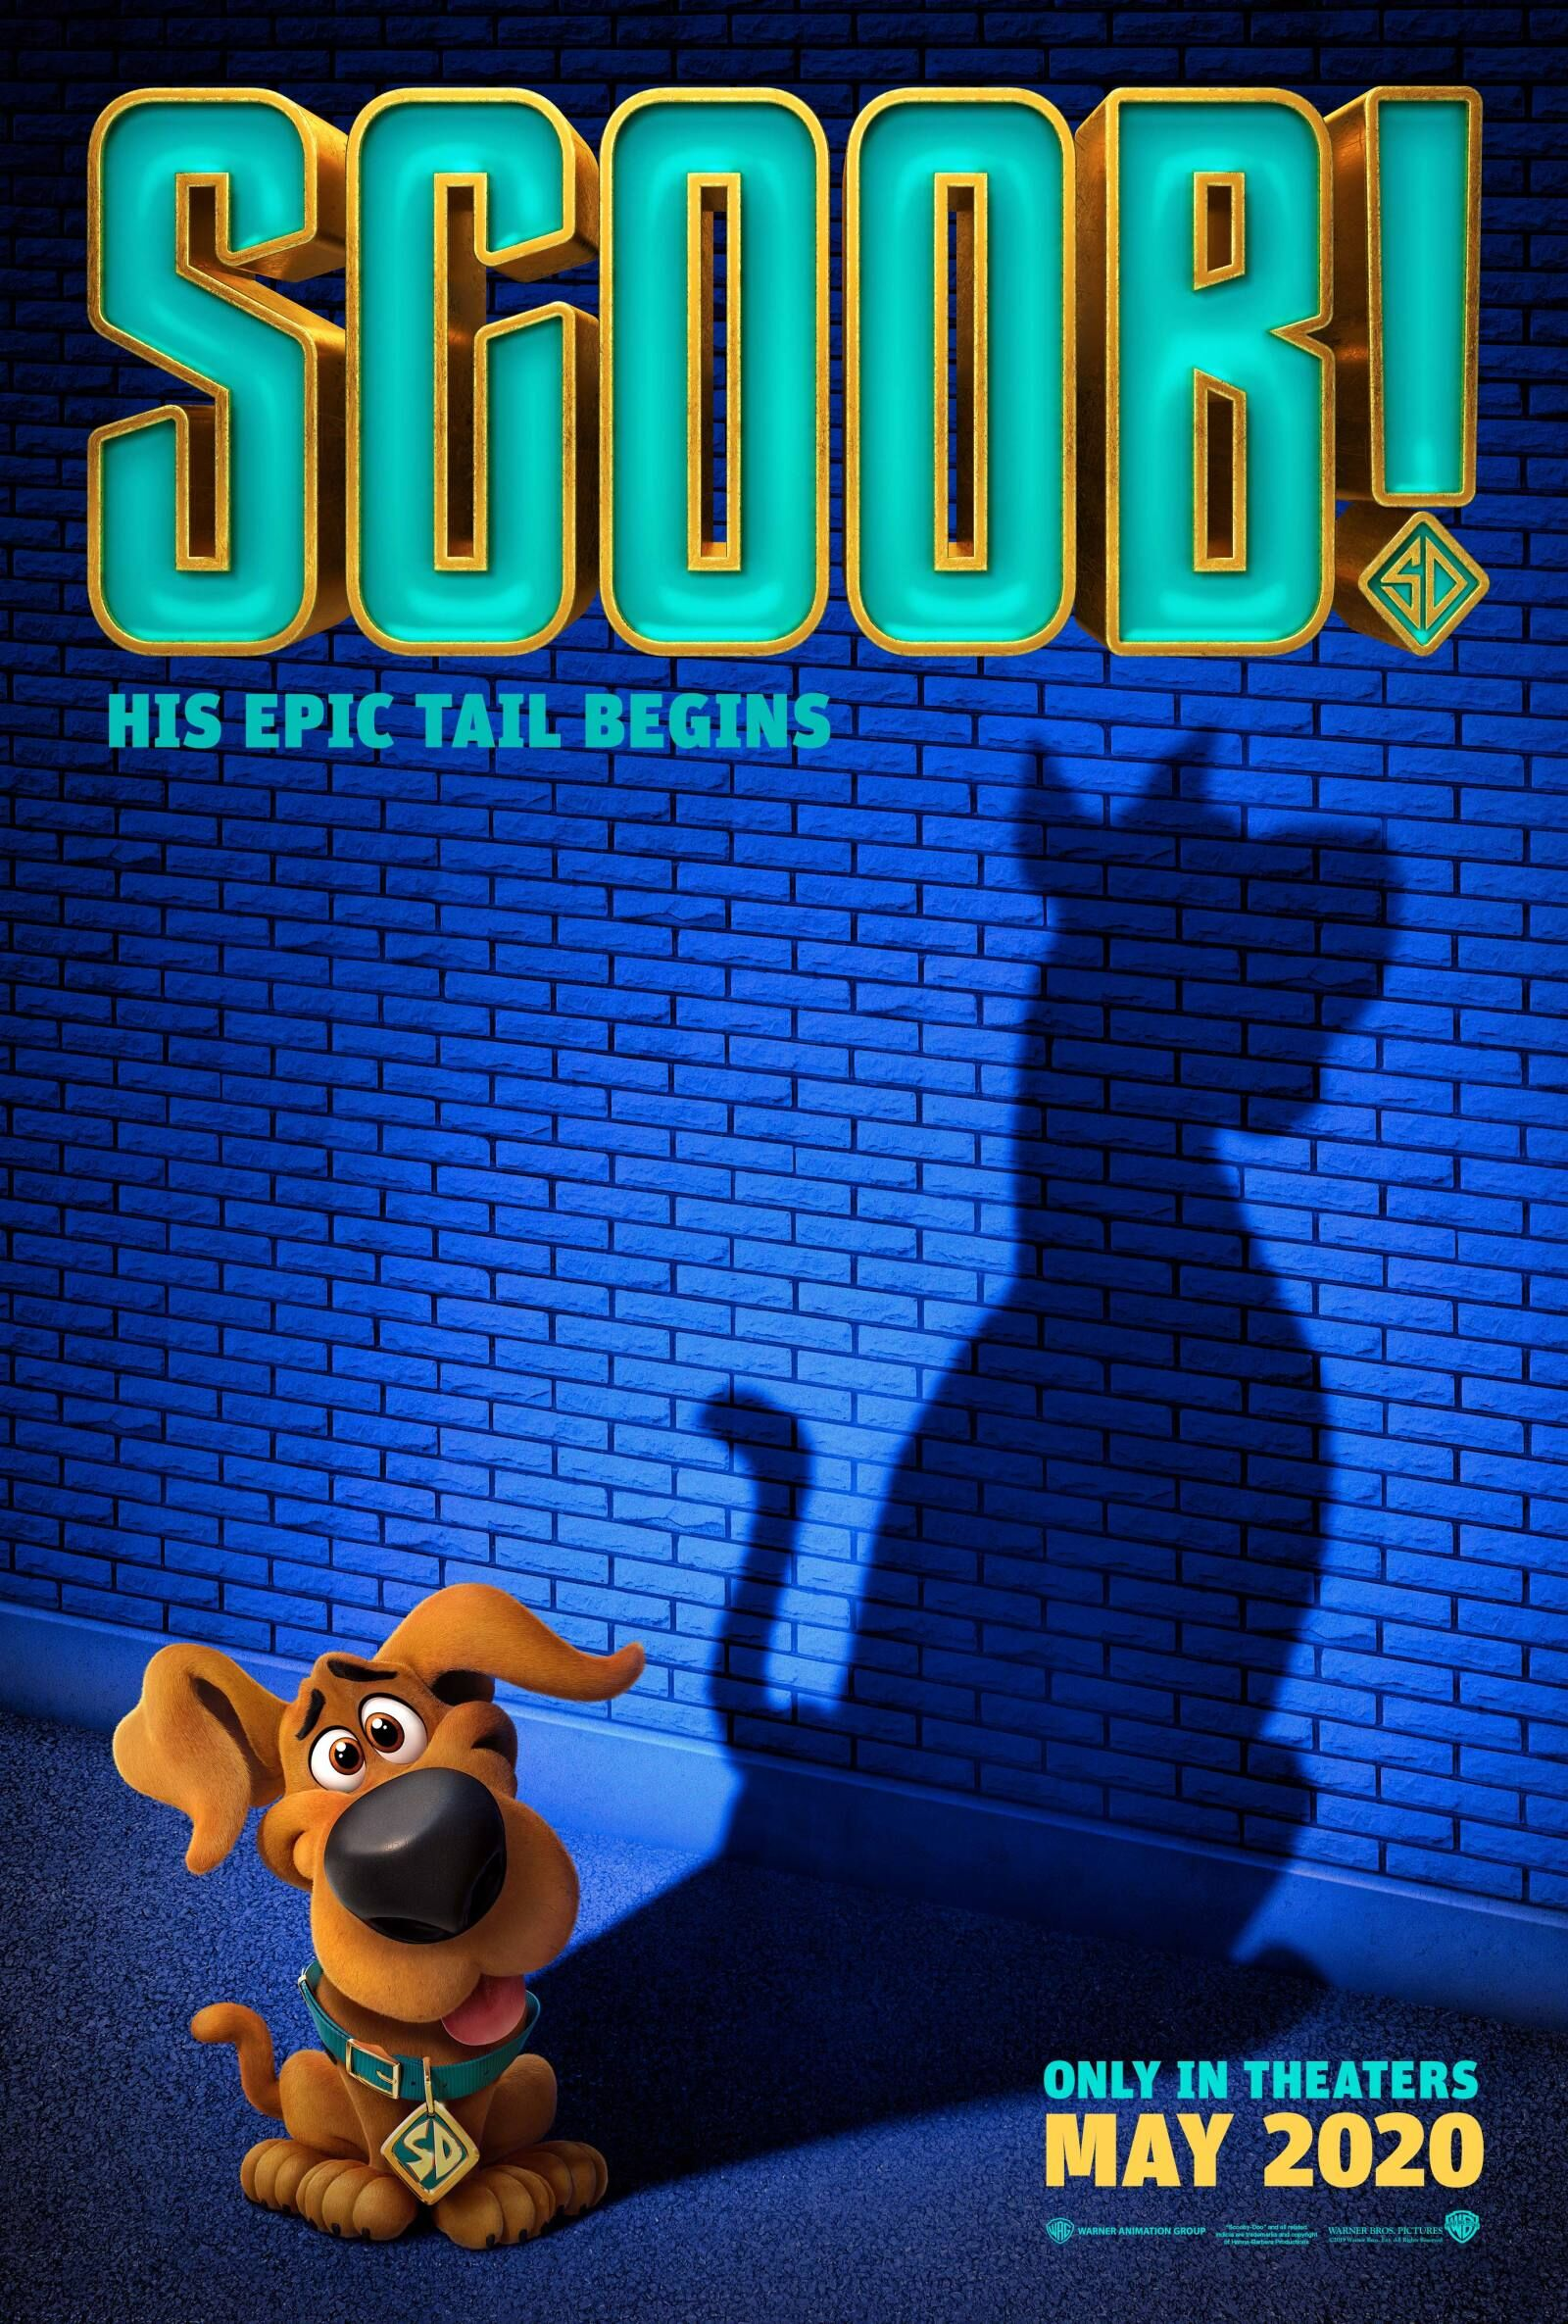 Zoinks! First trailer for animated movie Scoob just released